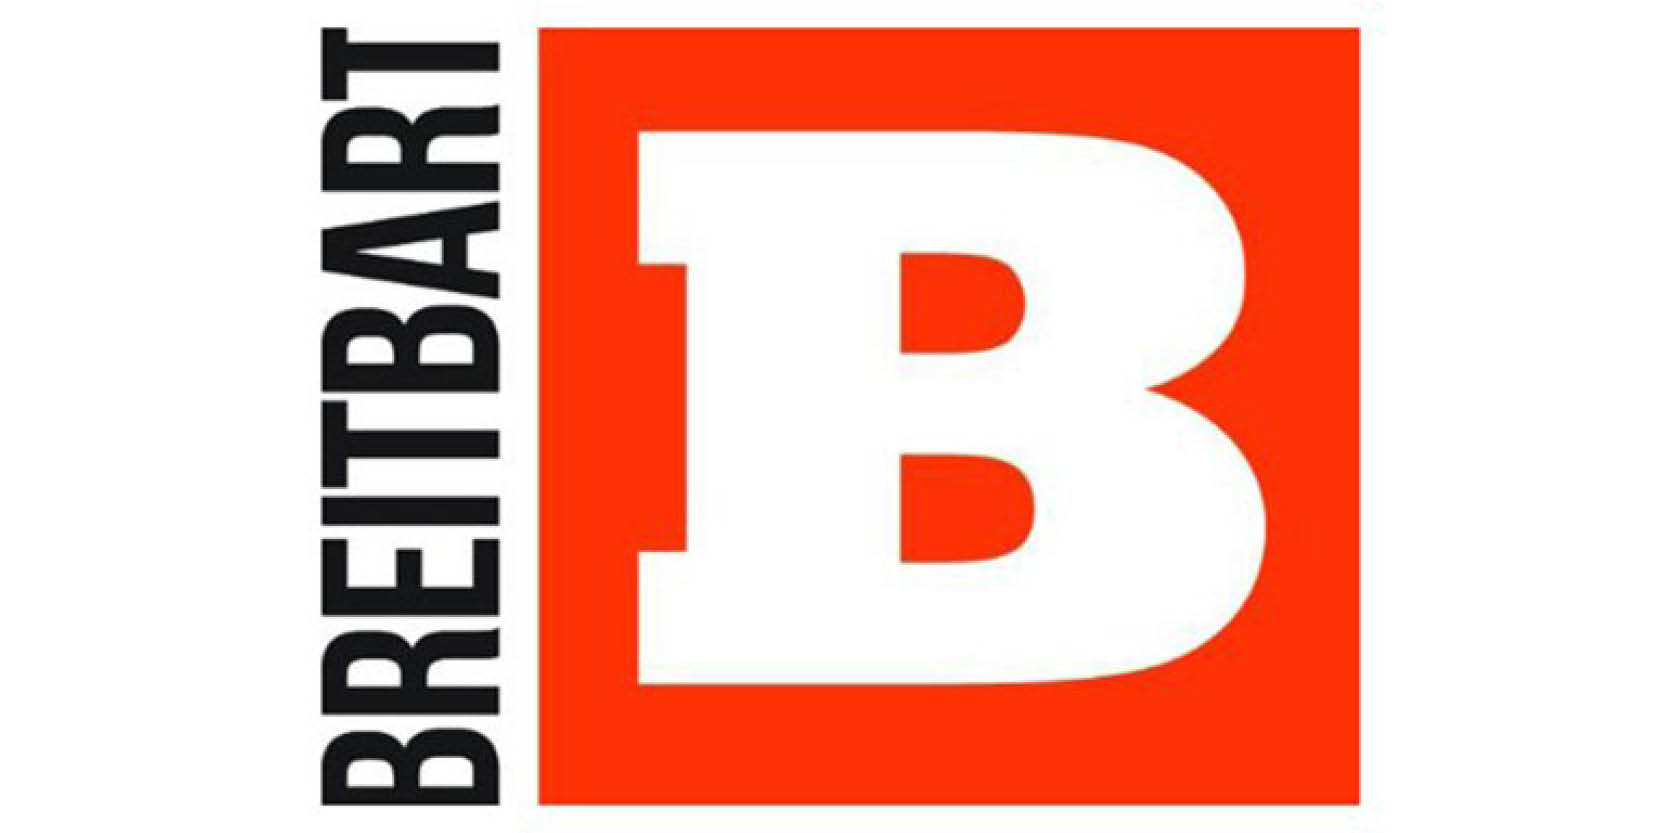 Breitbart: Report: Data Compromised of 5.5 Million Employees of World's Top 1,000 Companies